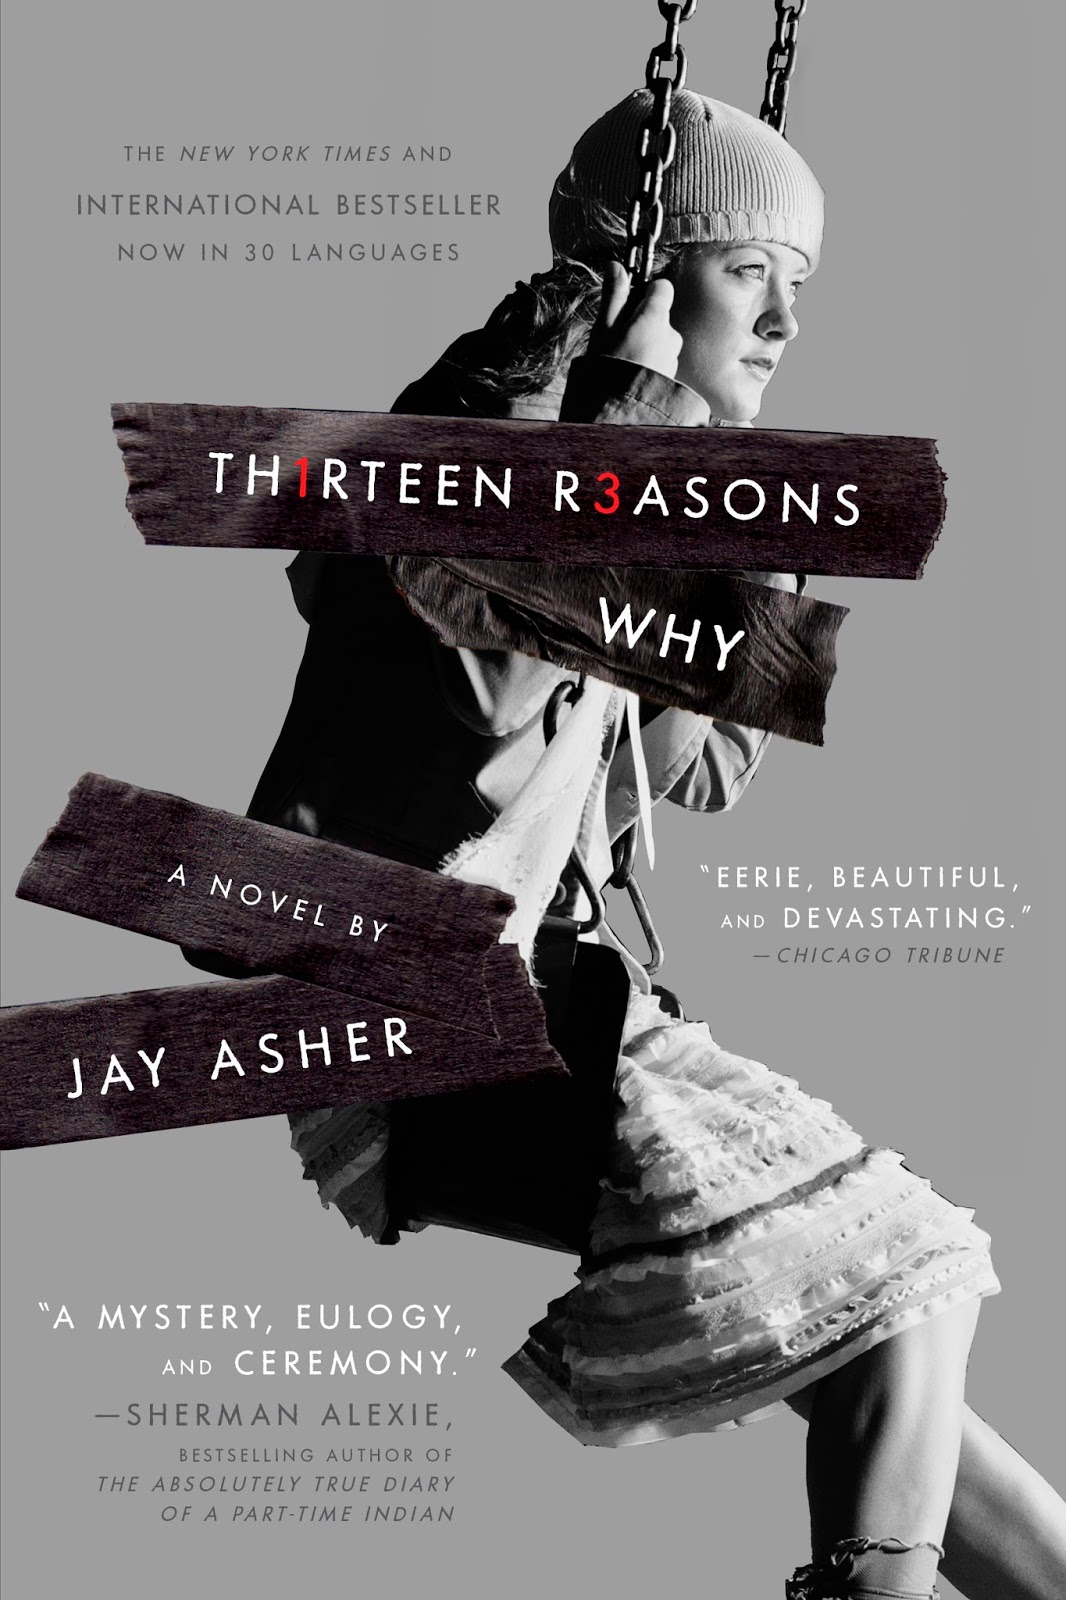 13 Reasons Why Book Cover